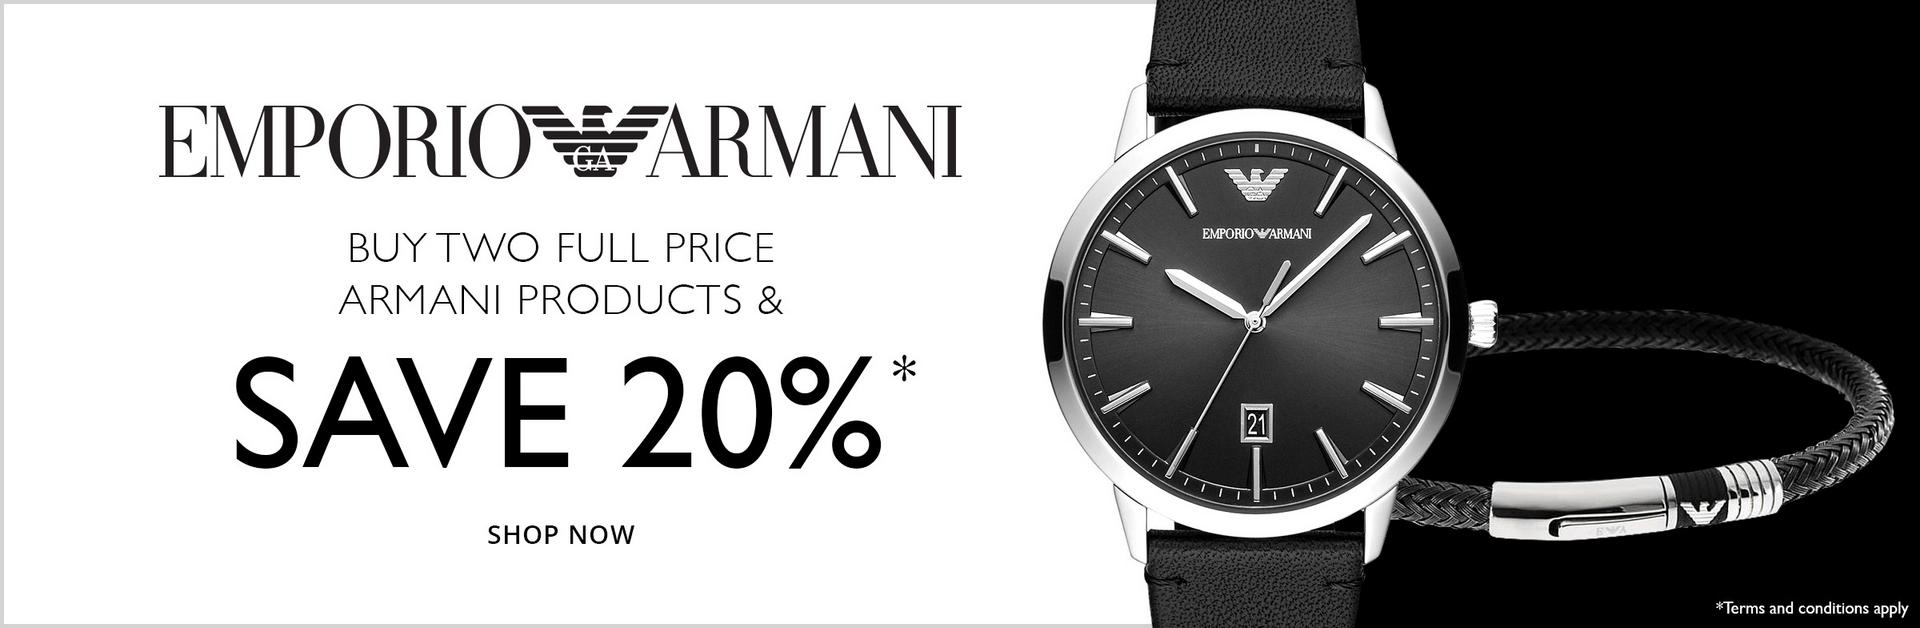 Buy 2 full price Armani products save 20% at  Ernest Jones